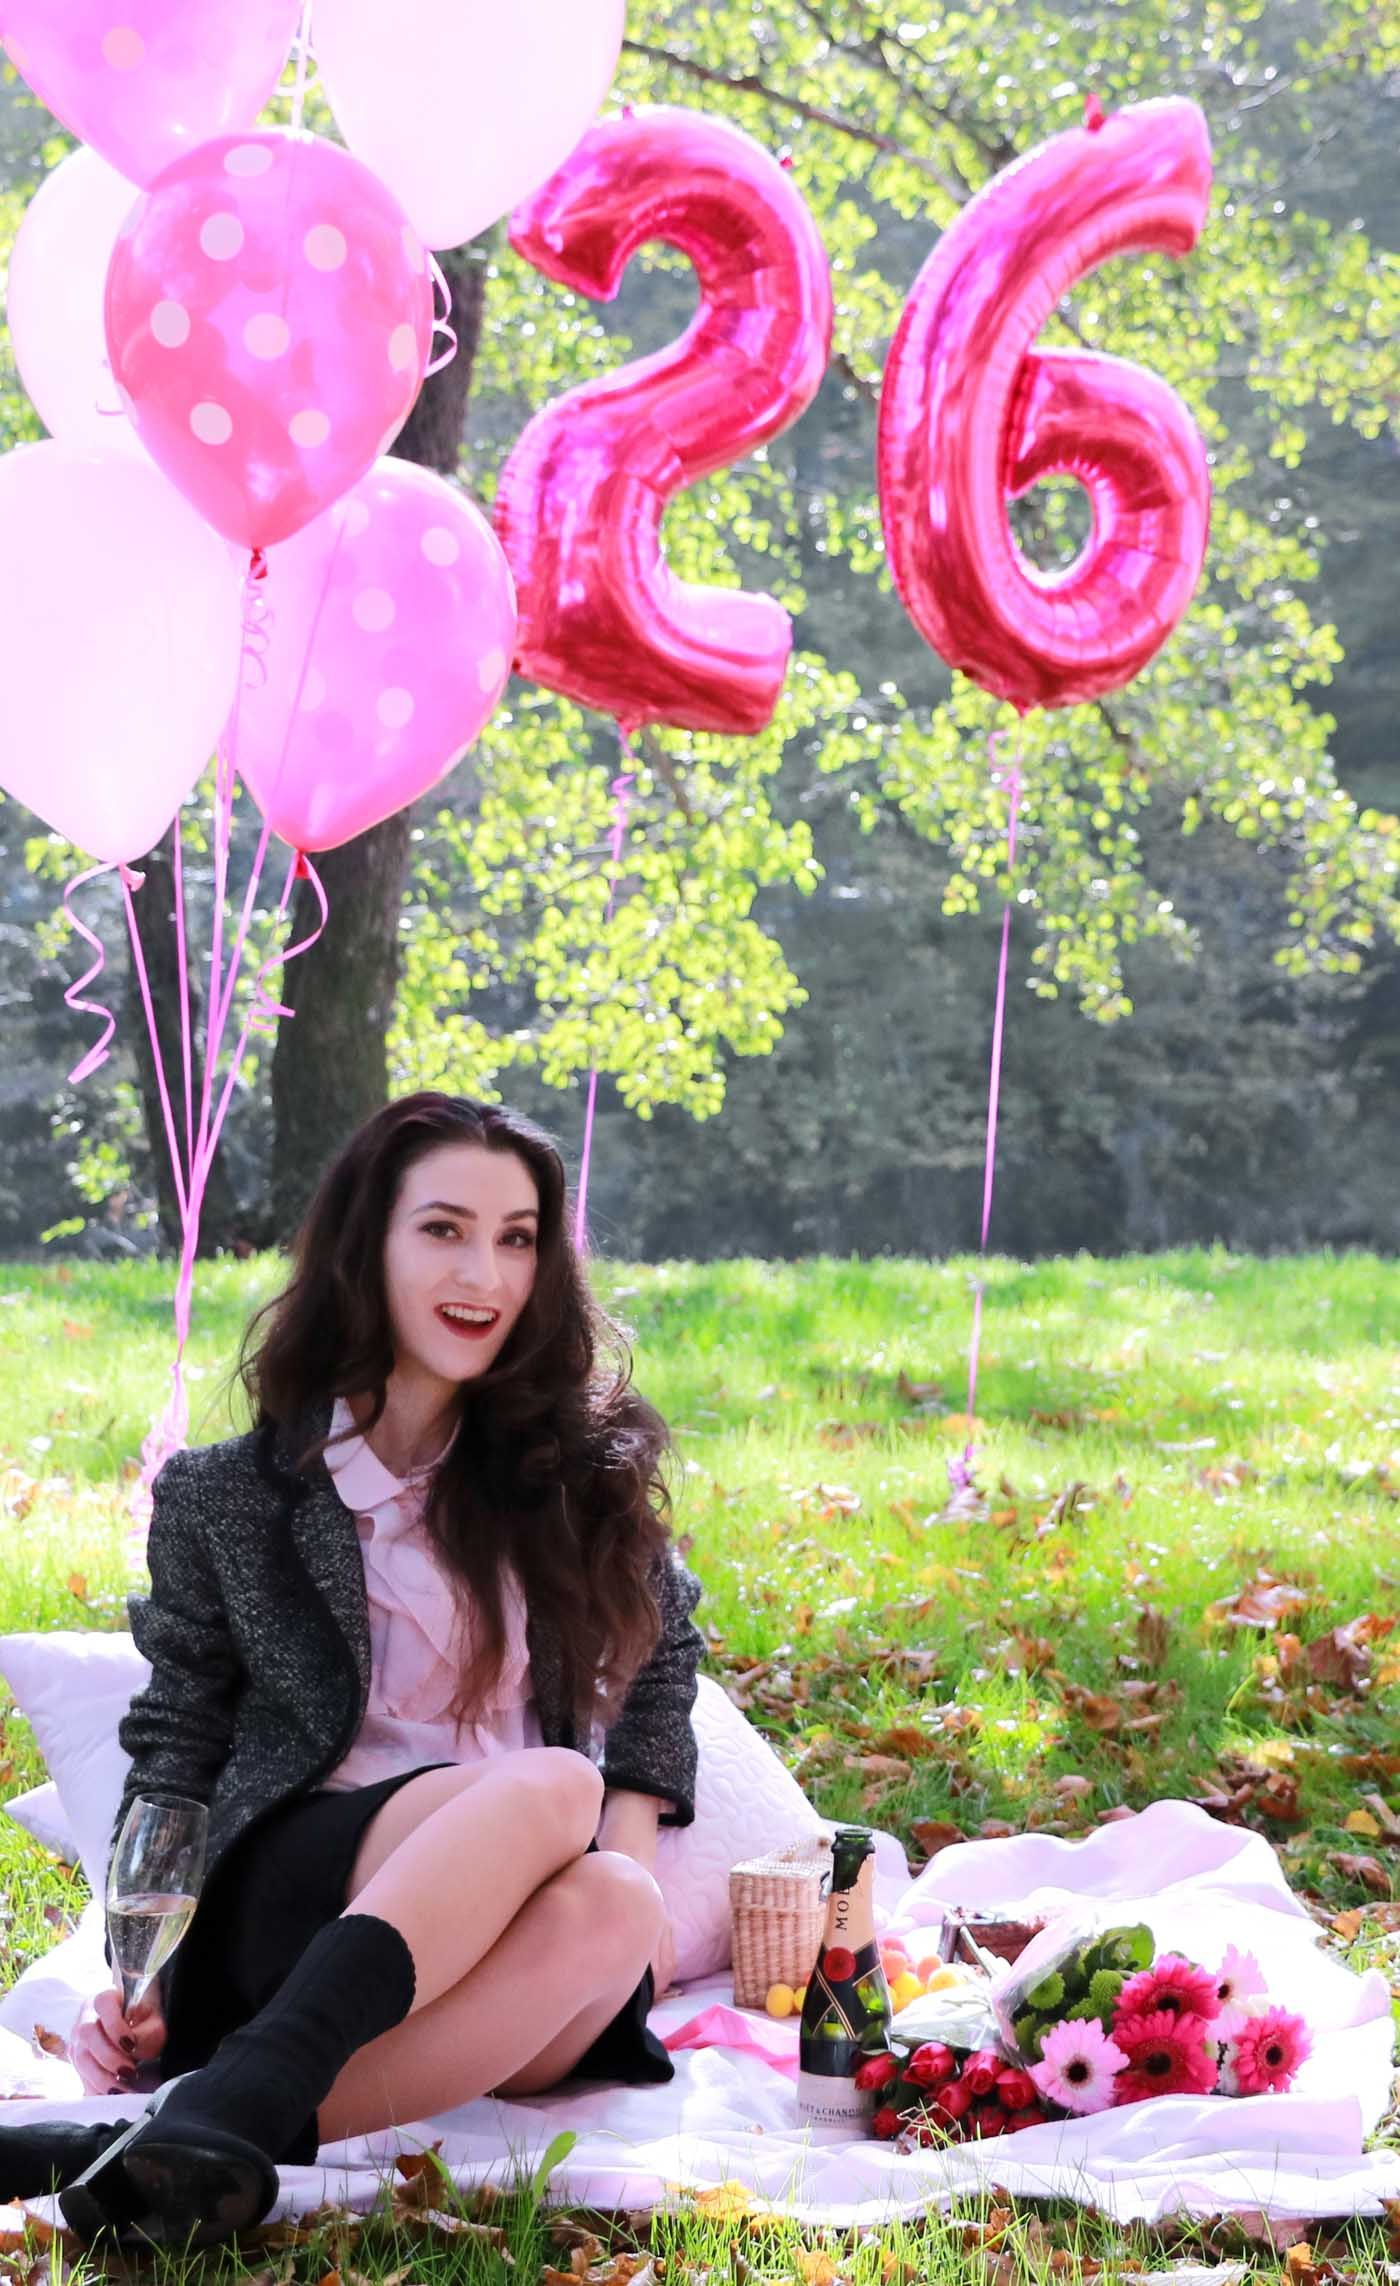 20-something Fashion Blogger Veronika Lipar of Brunette from Wall Street celebrating her birthday on a fall picnic